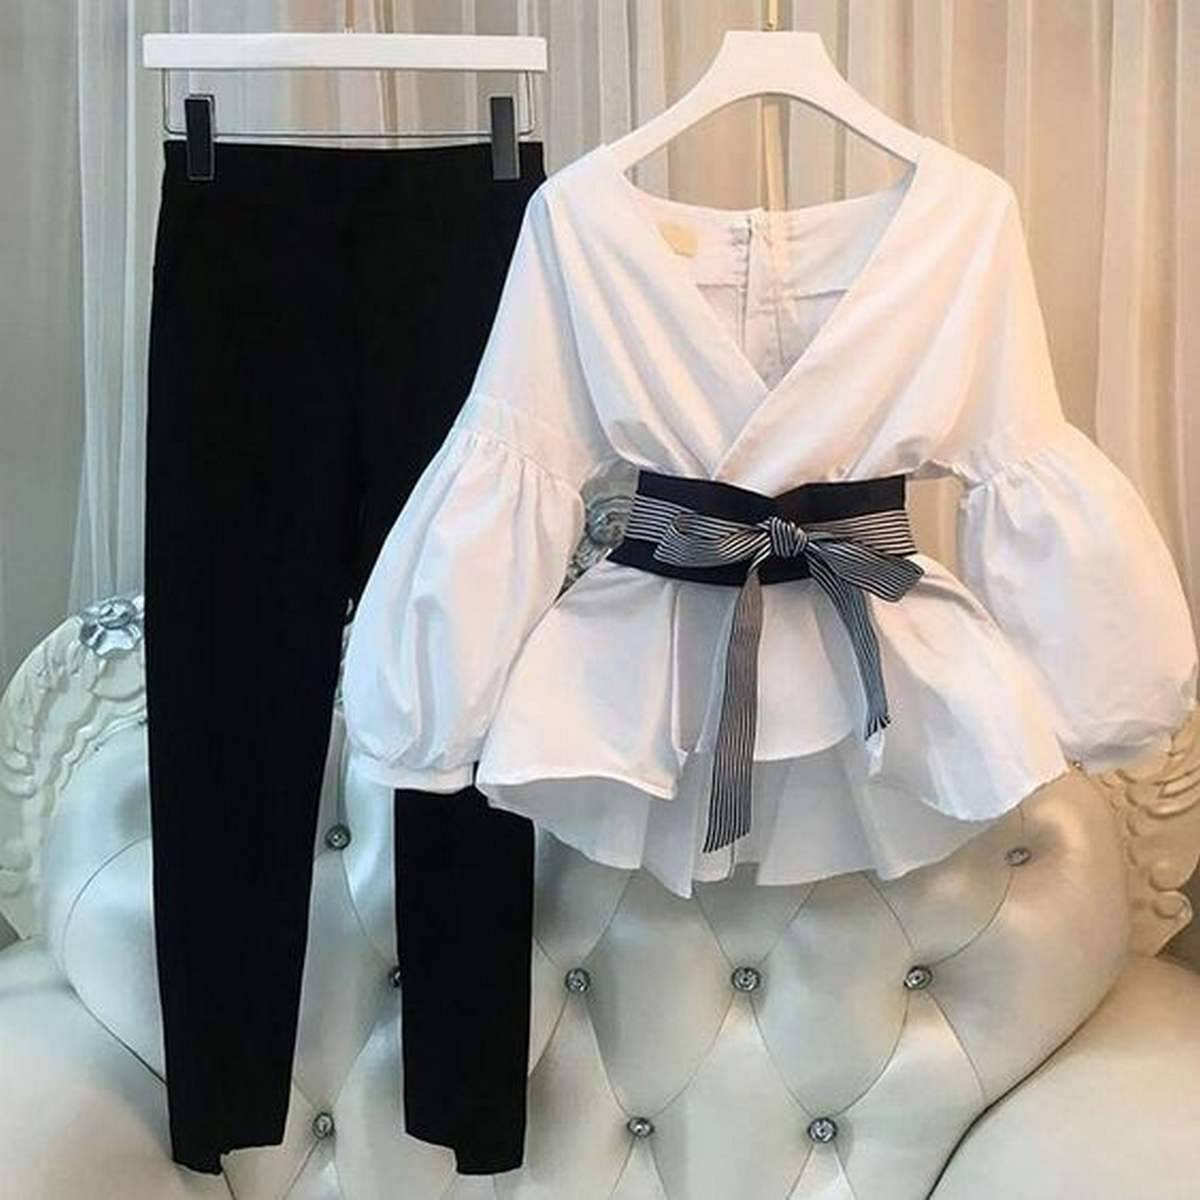 White & Black Cotton Shirt with Pant for Women